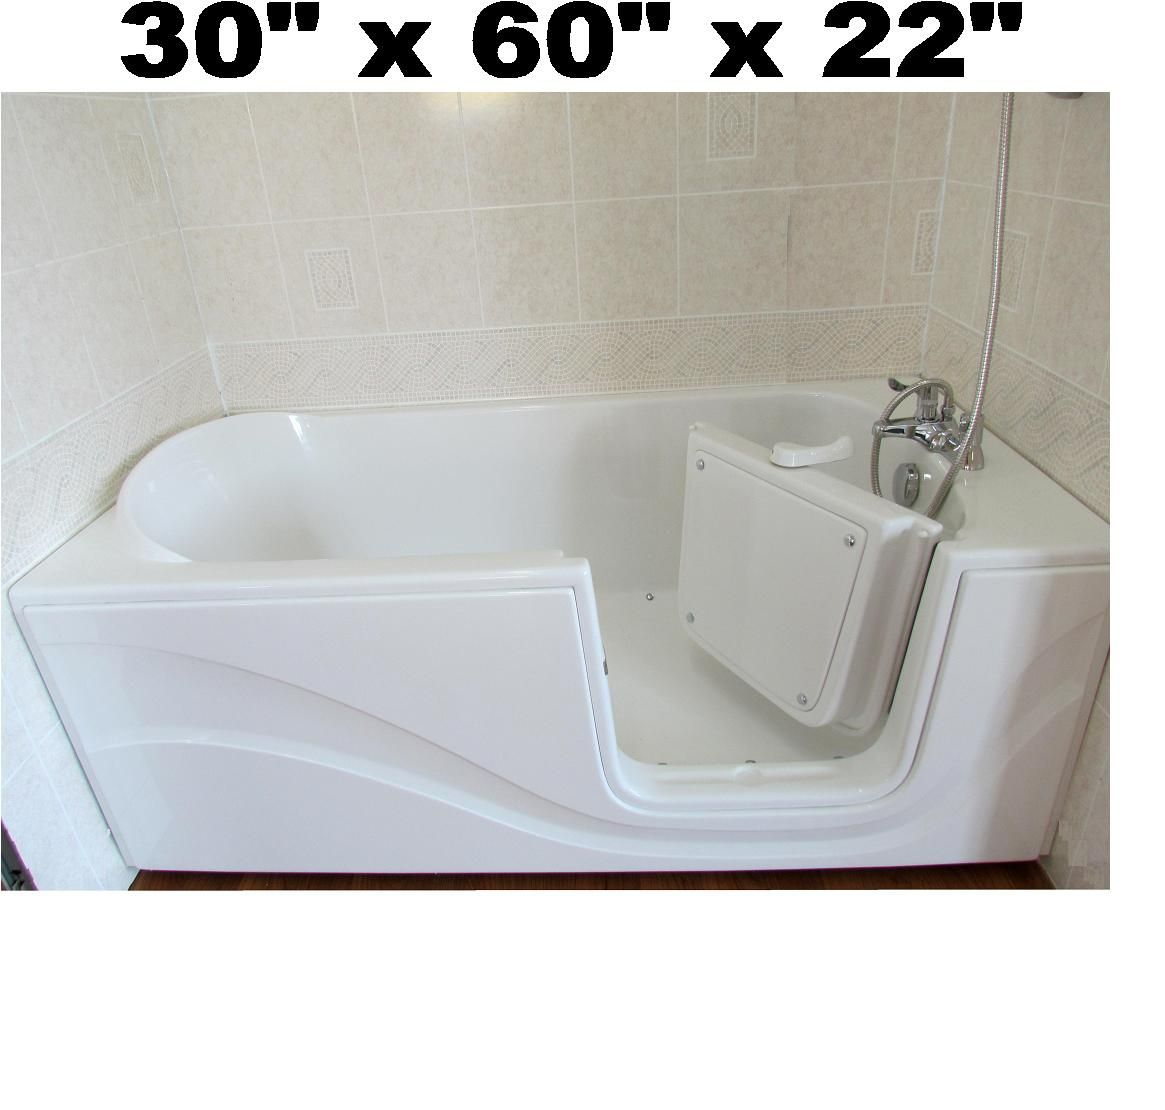 Elite Lay Down Walk In Bath Tub With Images Walk In Bath Walk